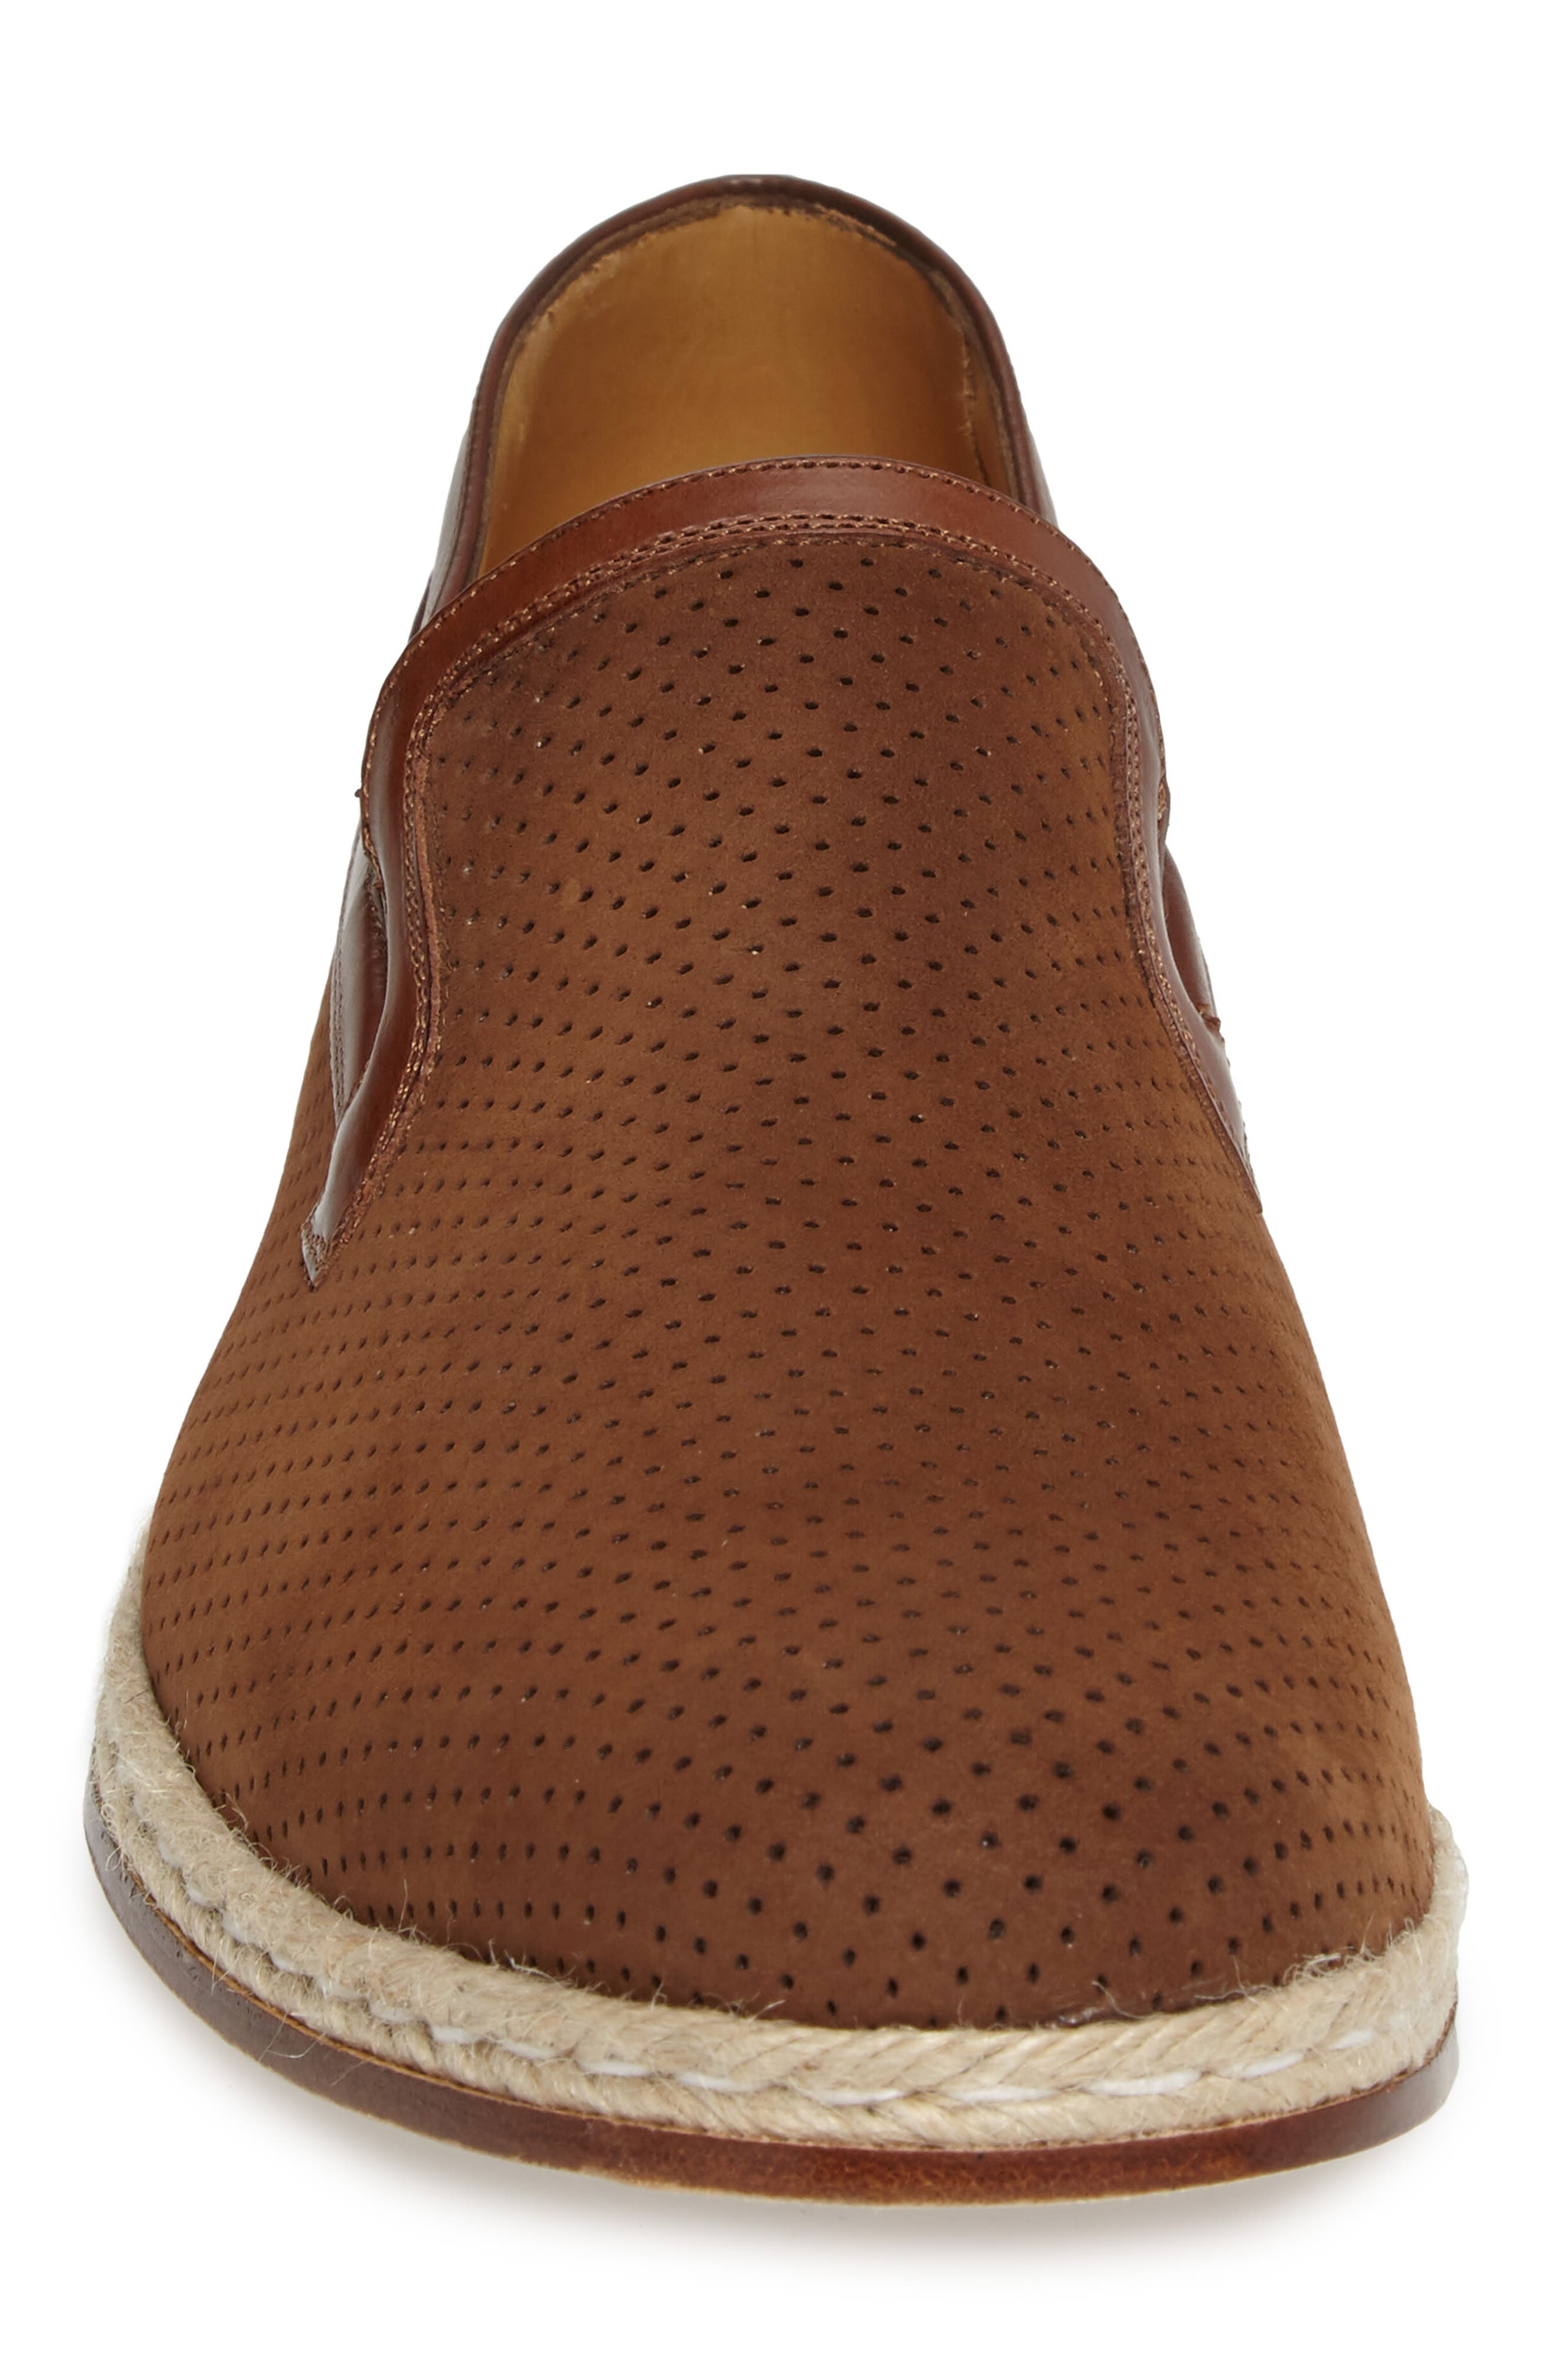 Marcet Perforated Loafer,                             Alternate thumbnail 4, color,                             200